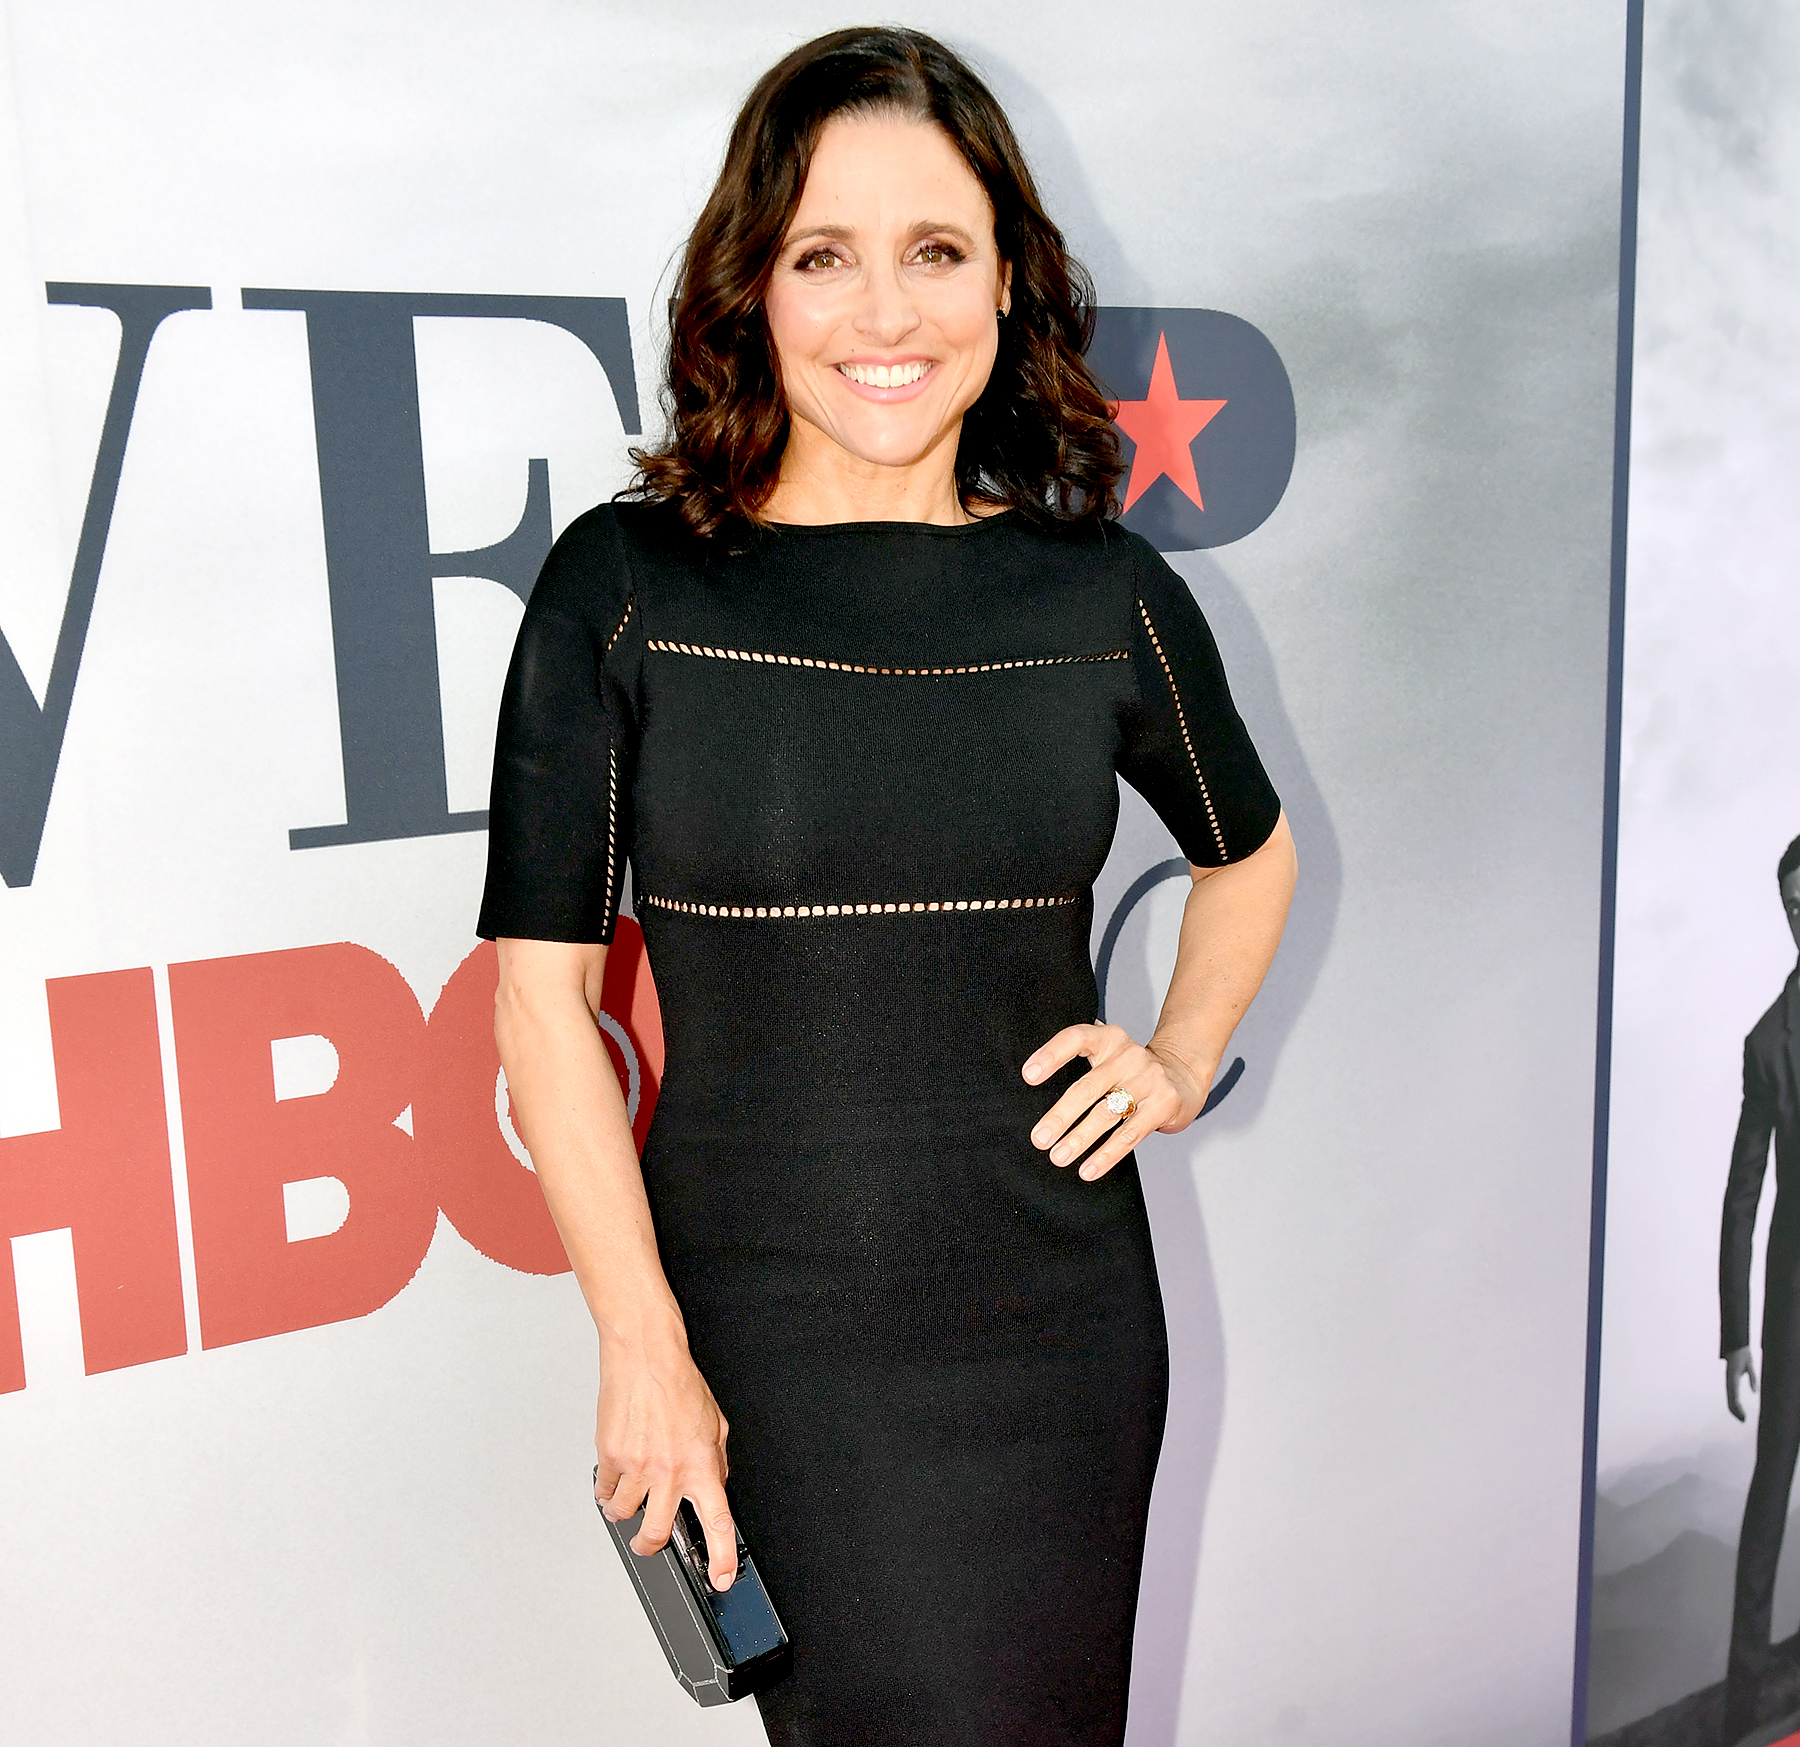 Julia Louis-Dreyfus 'ready to rock' after breast-cancer surgery